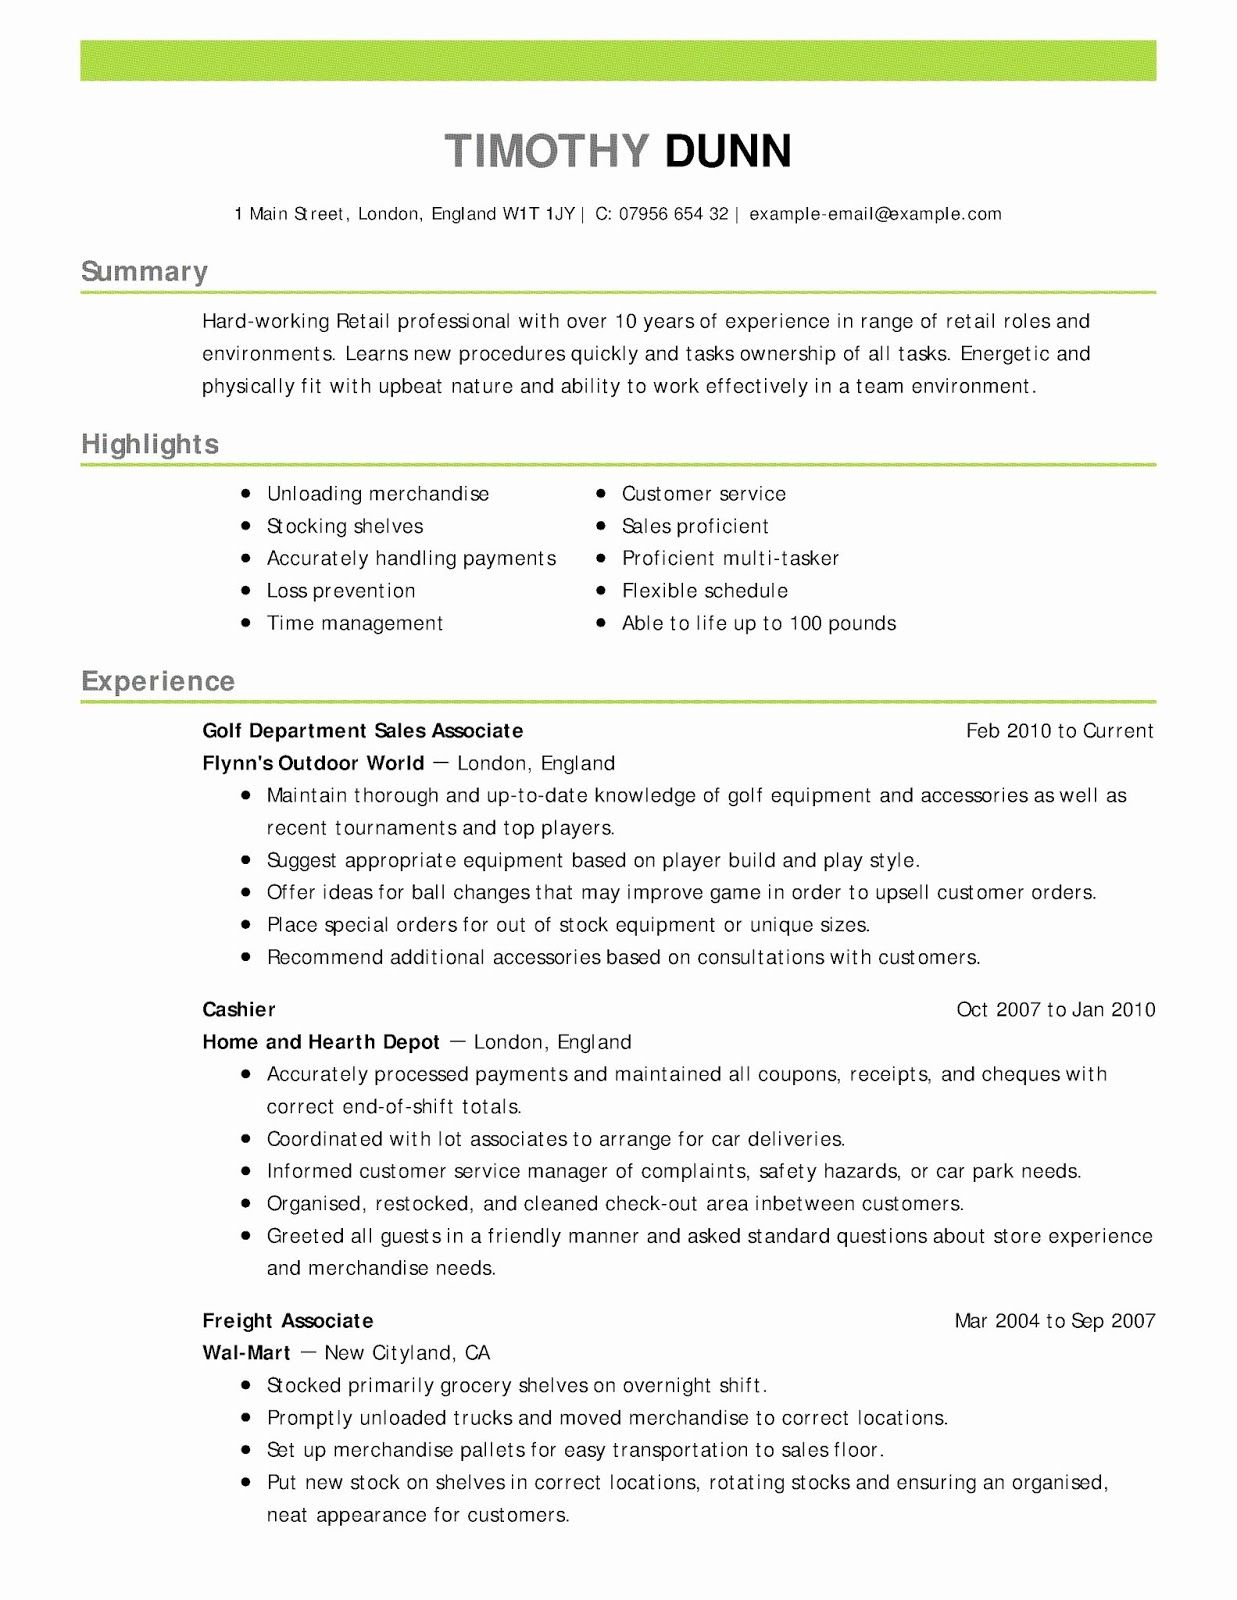 Safety Director Resume Summary 2019 safety director resume